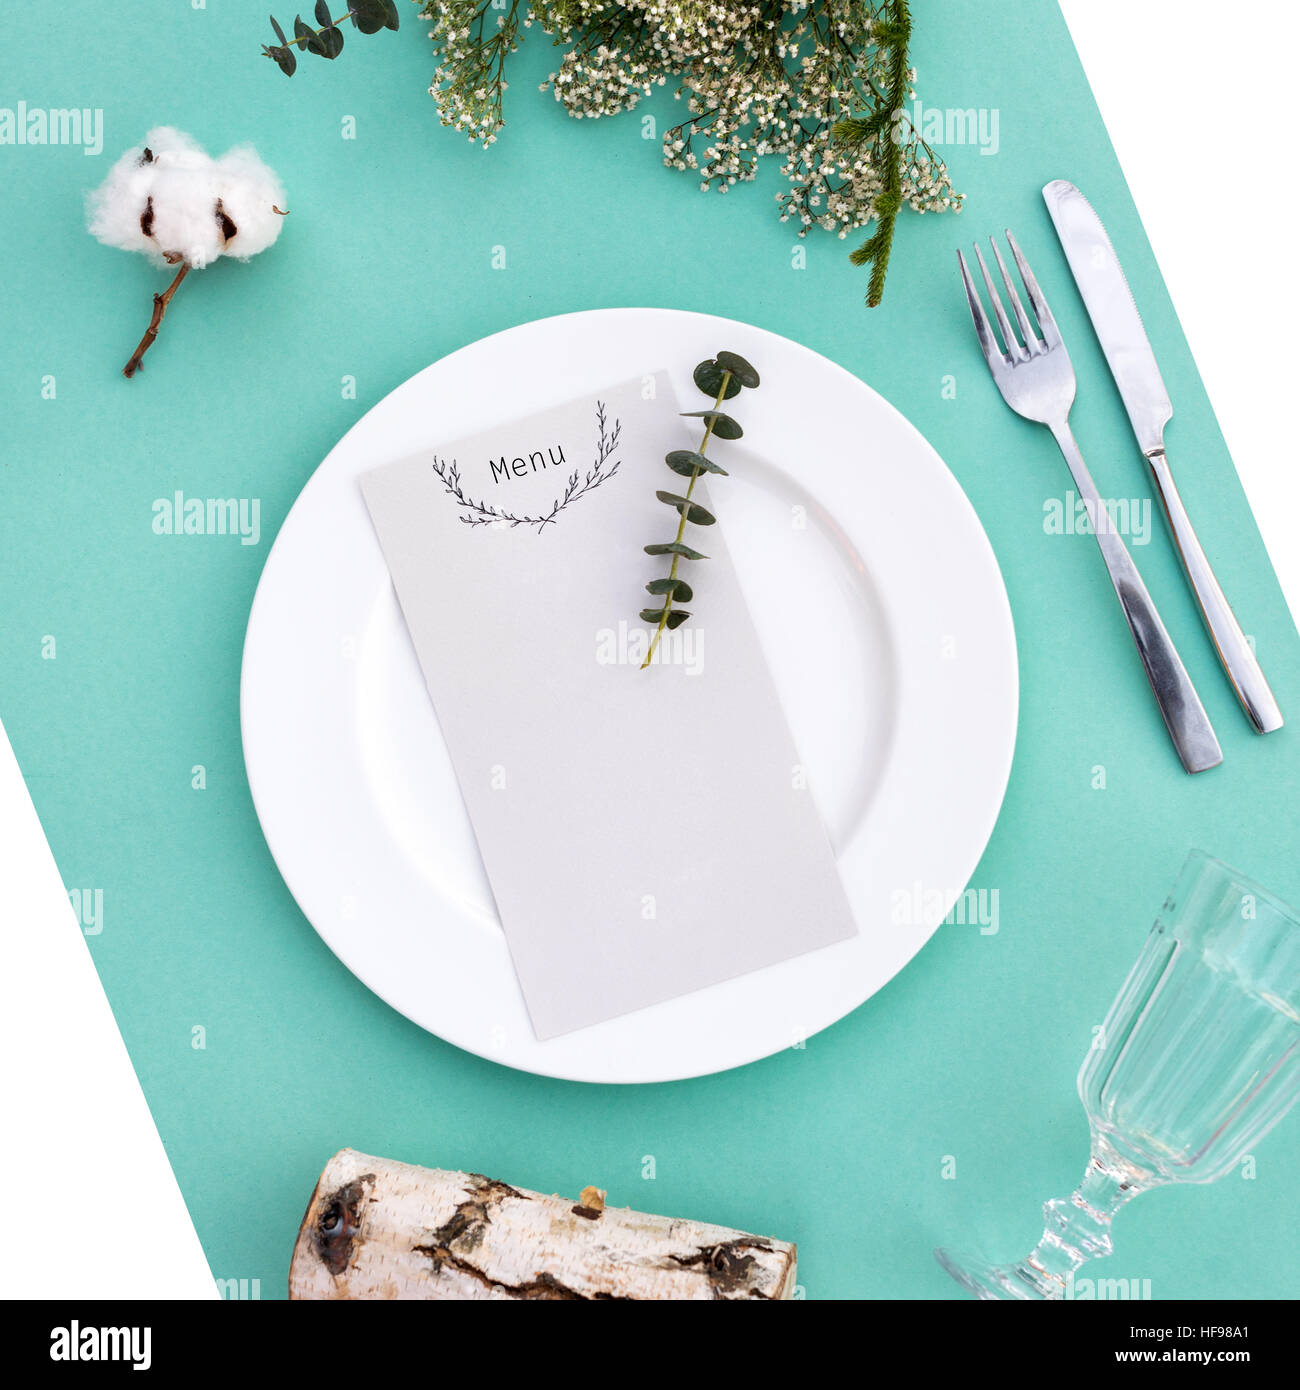 Dinner menu for a wedding or luxury evening meal. Table setting from above. Elegant empty plate, cutlery, glass - Stock Image